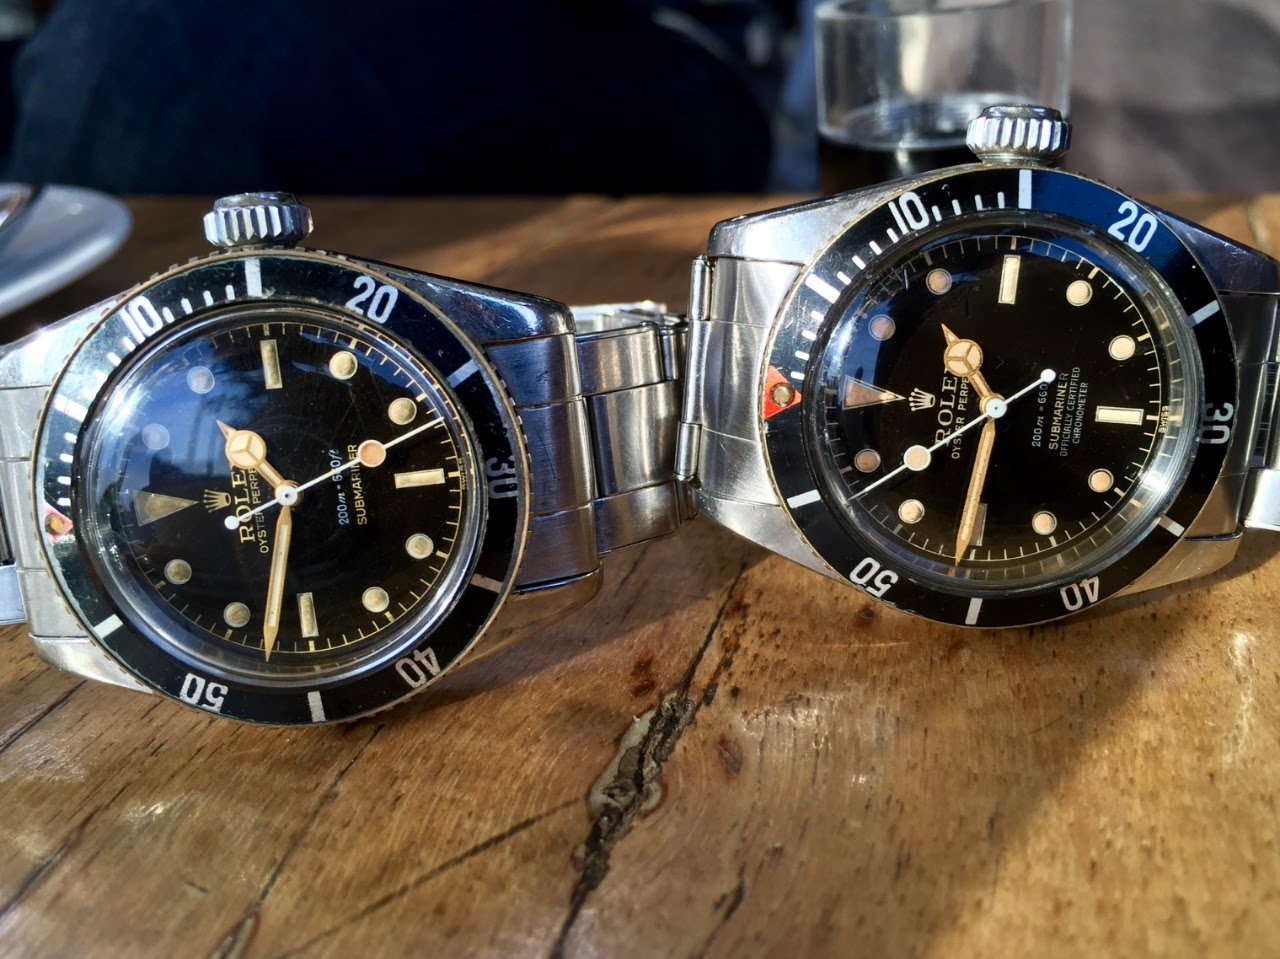 Rolex Rolex 5510 Vs Rolex 6538 4 Line Battle Of The Big Crowns